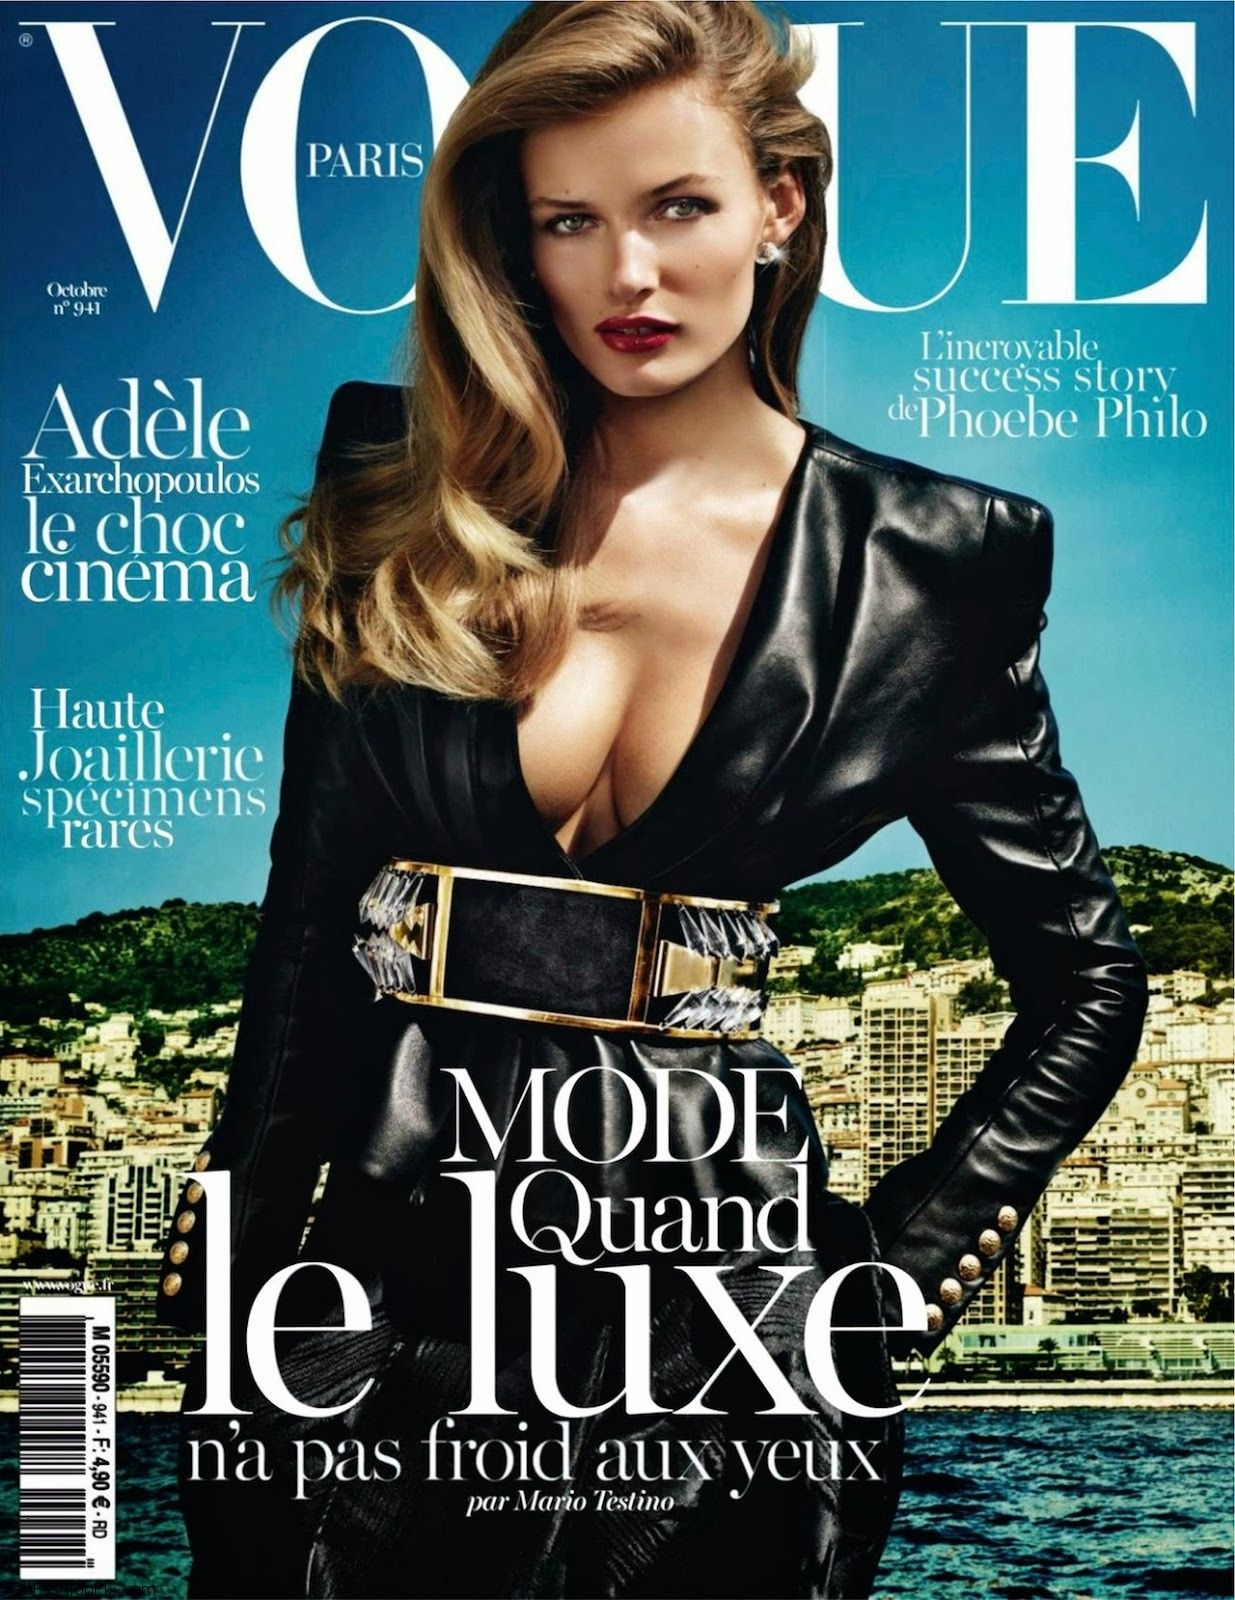 vogue-paris-2013-octobre (dragged)